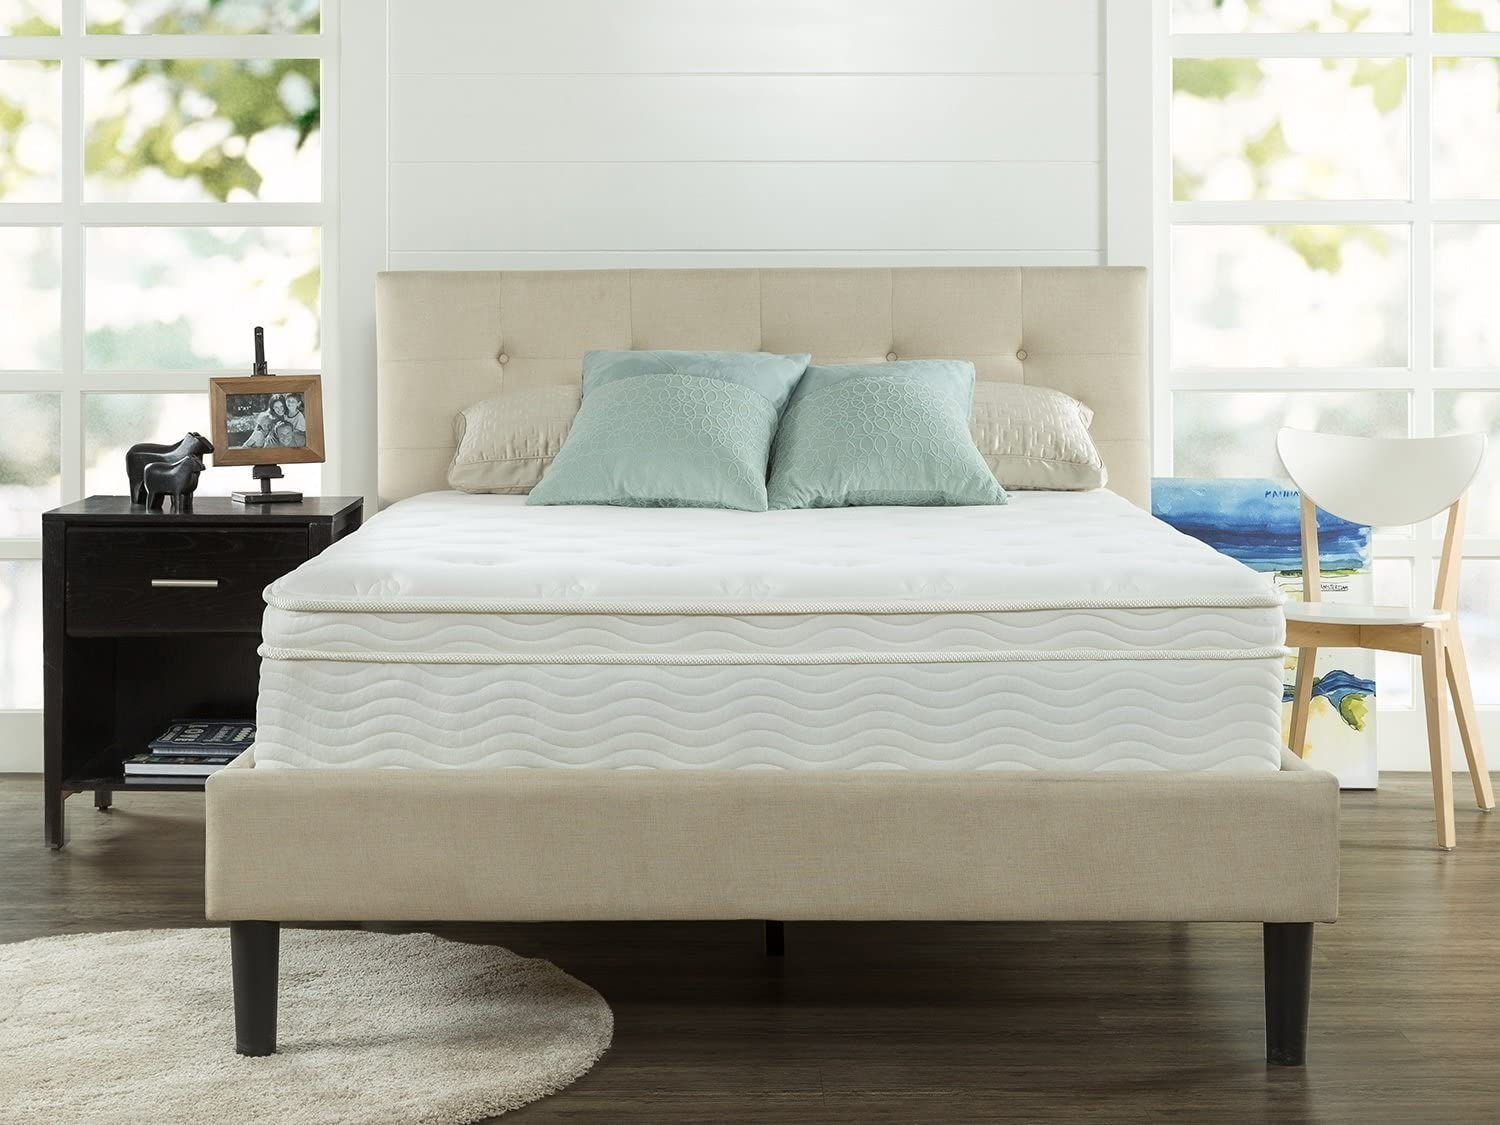 Zinus Ultima Comfort 13 Inch Deluxe Euro Box Top Spring Mattress, Queen